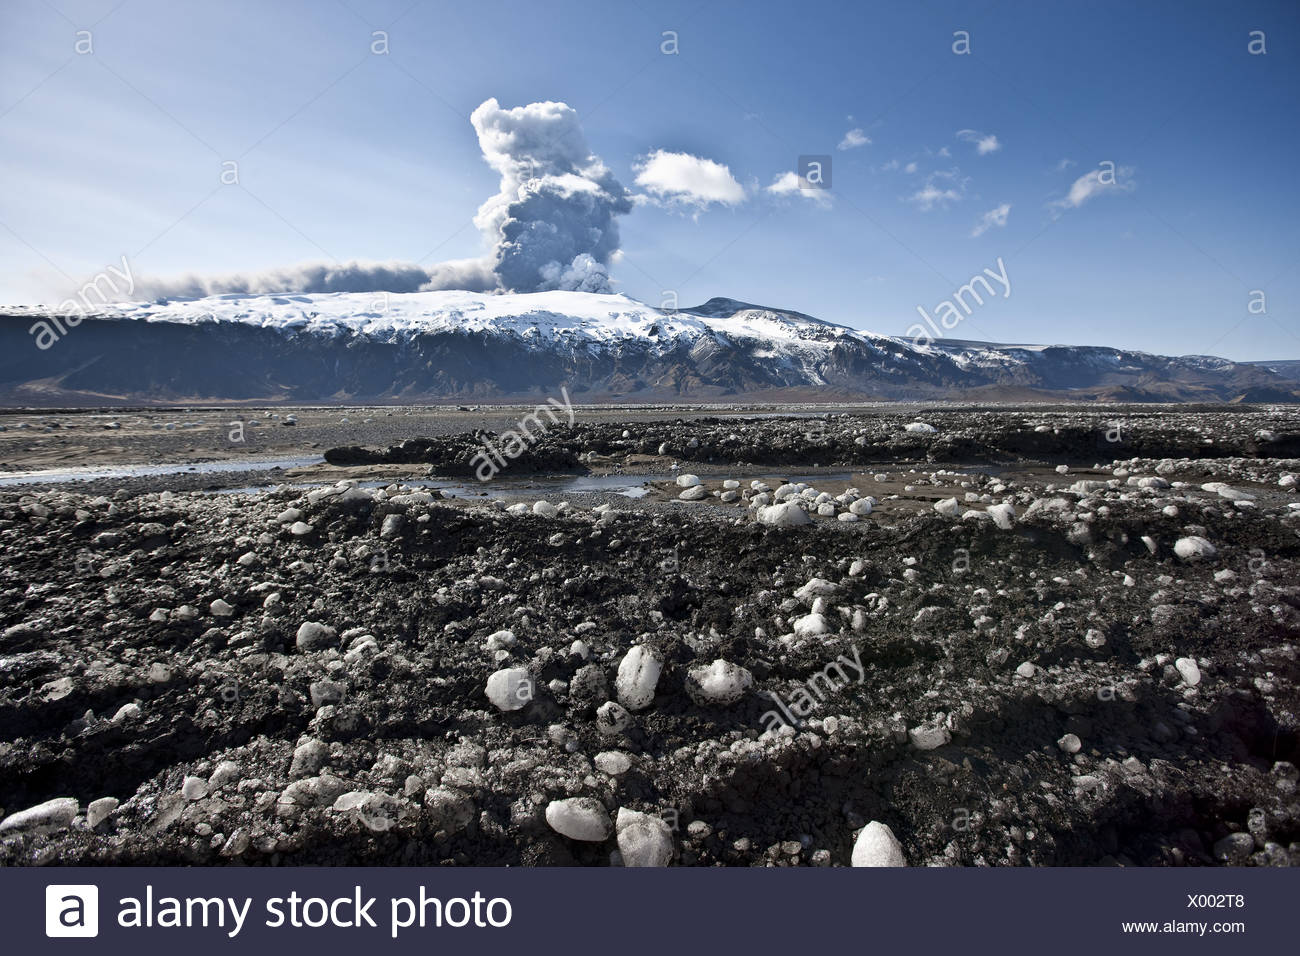 Ash and dirt on snow from volcanic ash cloud due to eruption of Eyjafjalljokull glacier, Iceland - Stock Image